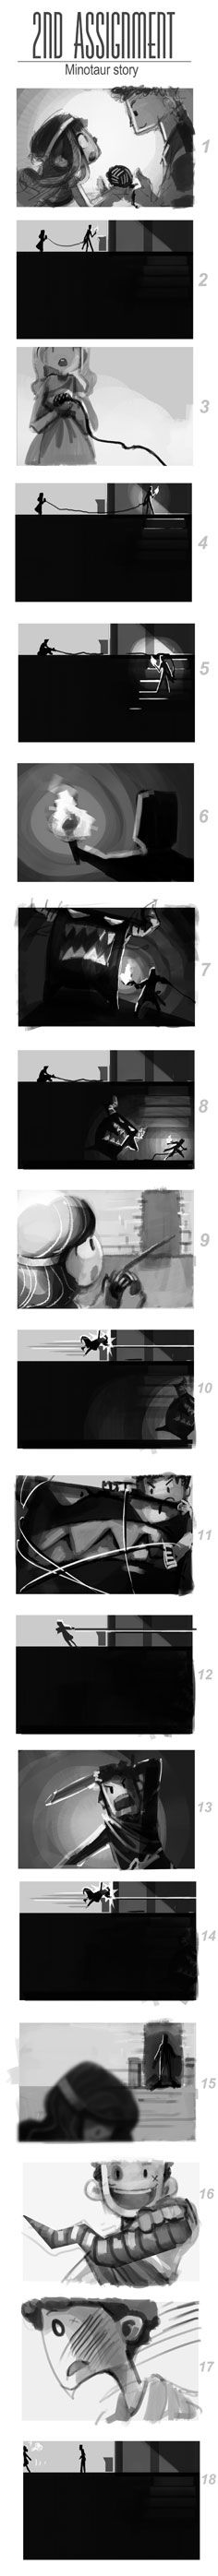 Minotaur Sequence (2nd Task) & The Winged Thief(1st Task) - image 1 - student project